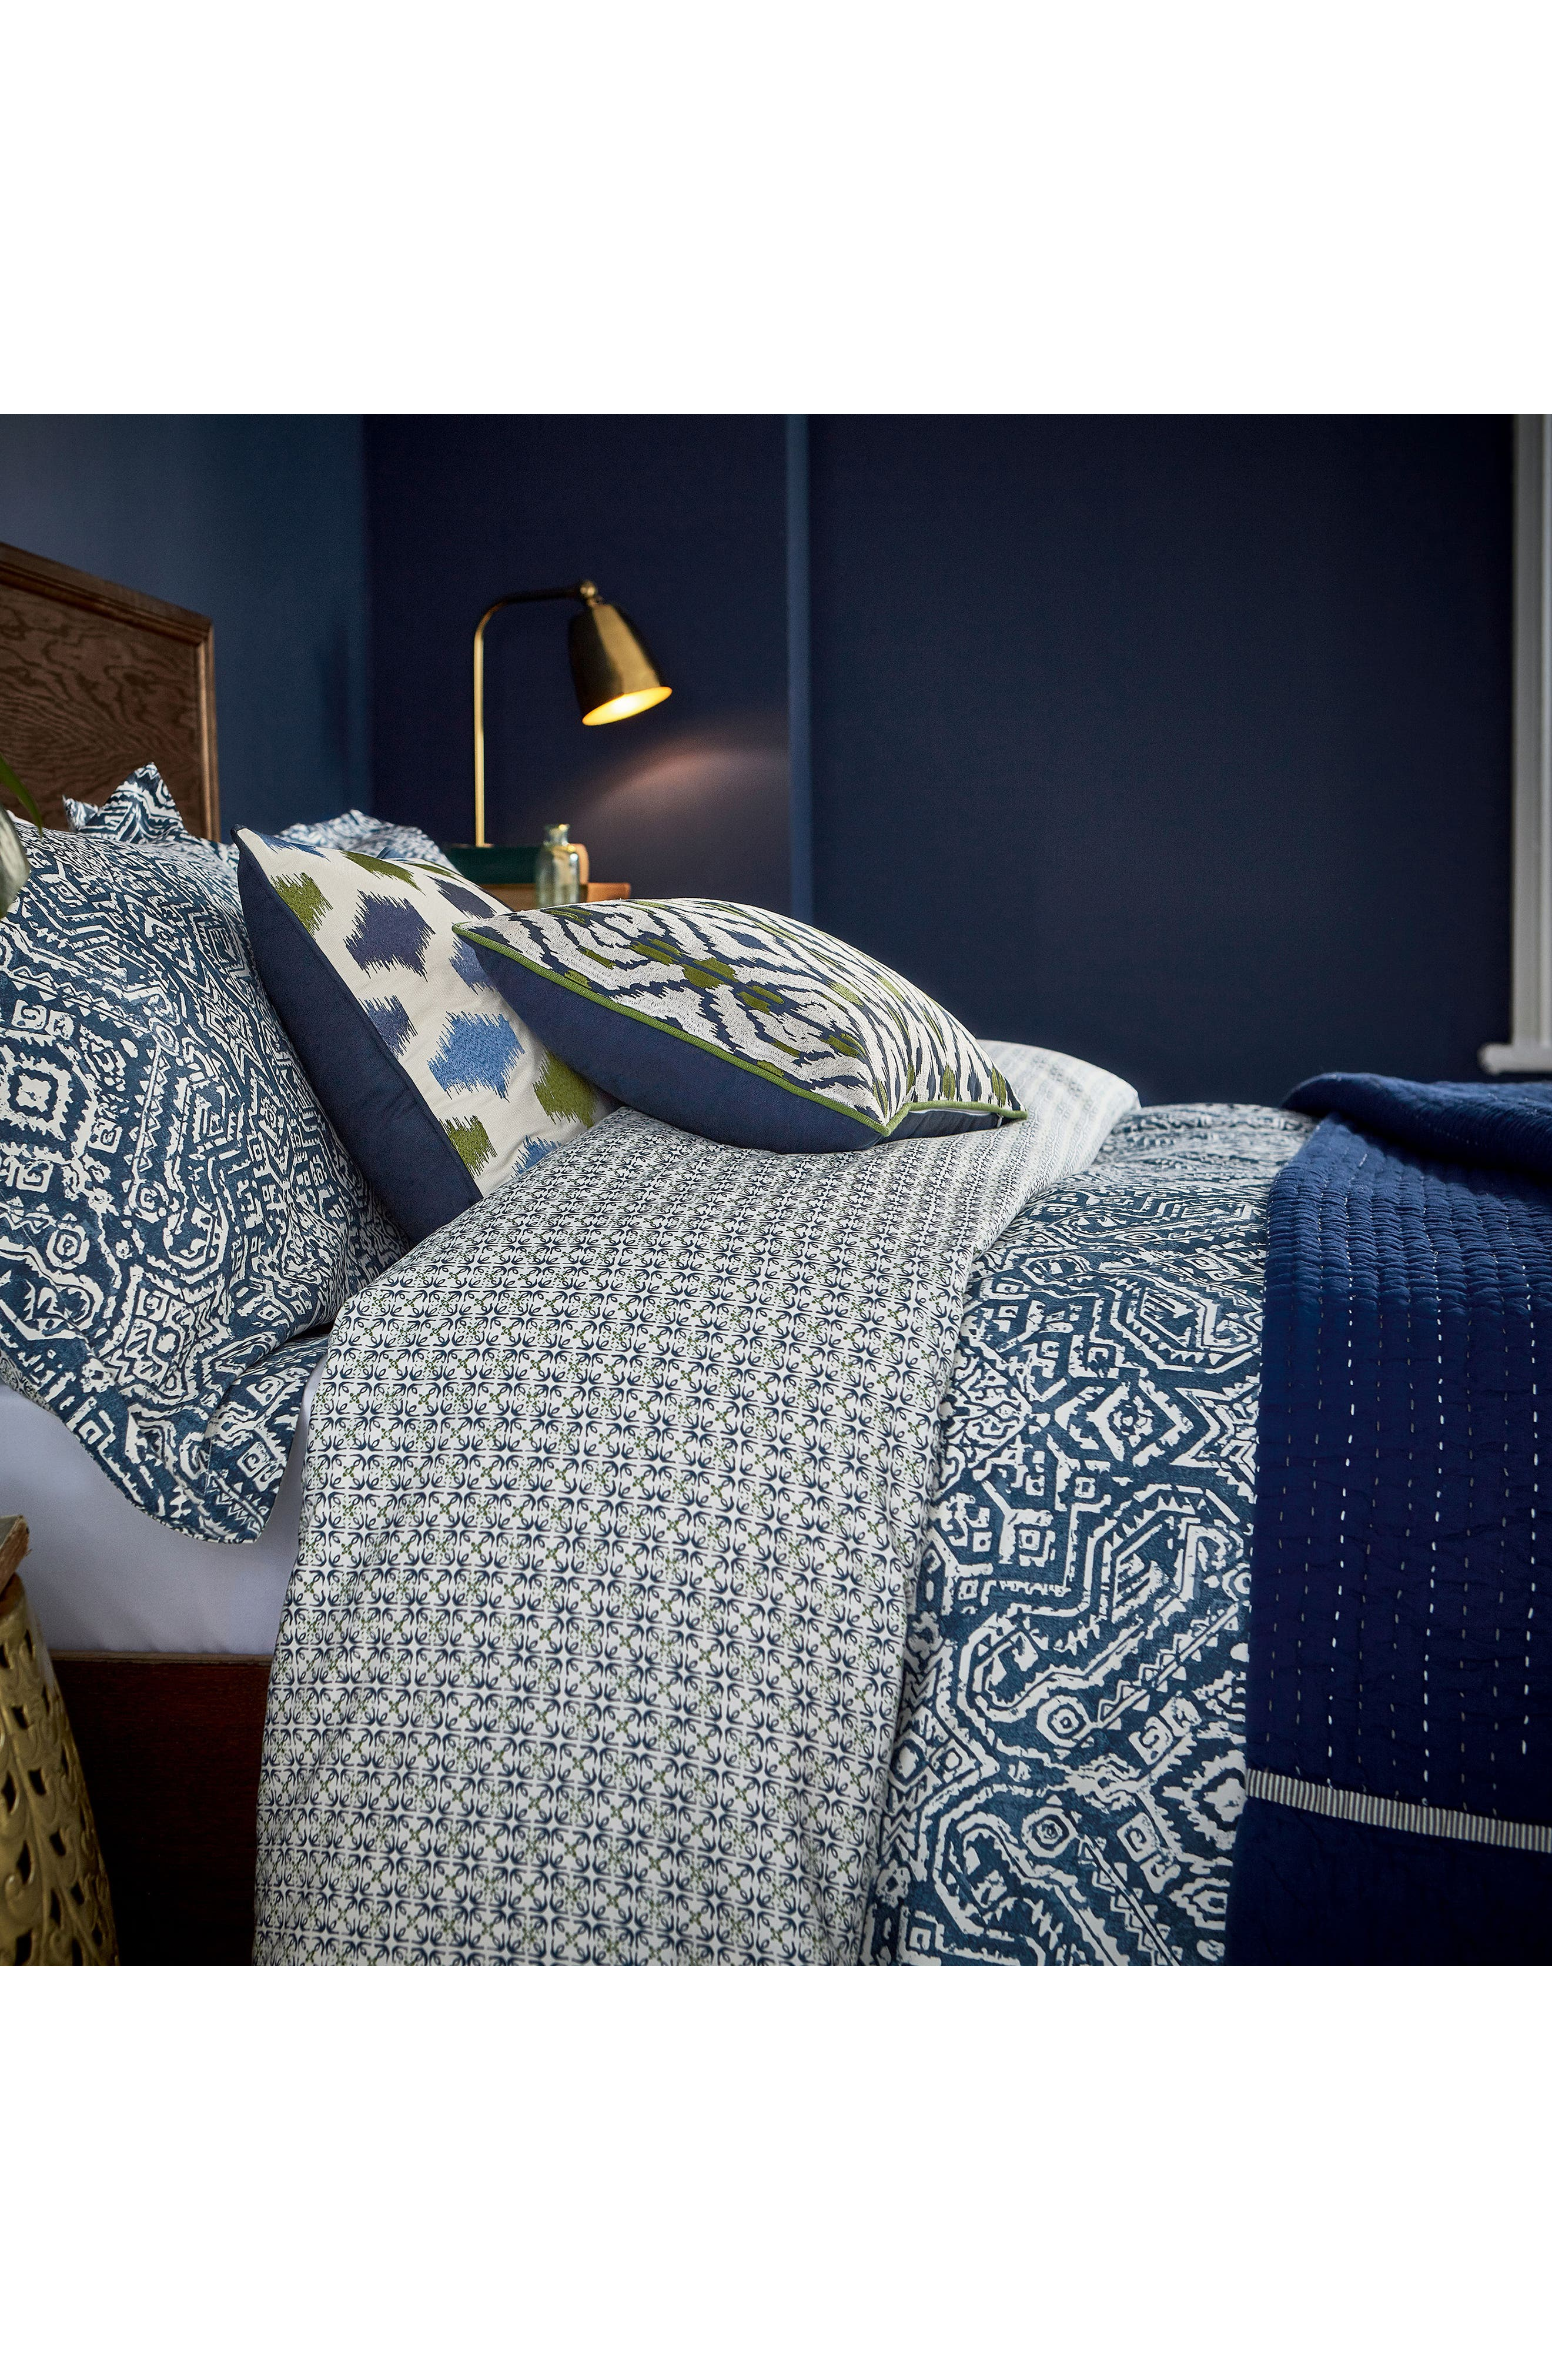 Ila Hand Stitched Kantha Quilt,                             Alternate thumbnail 2, color,                             Navy